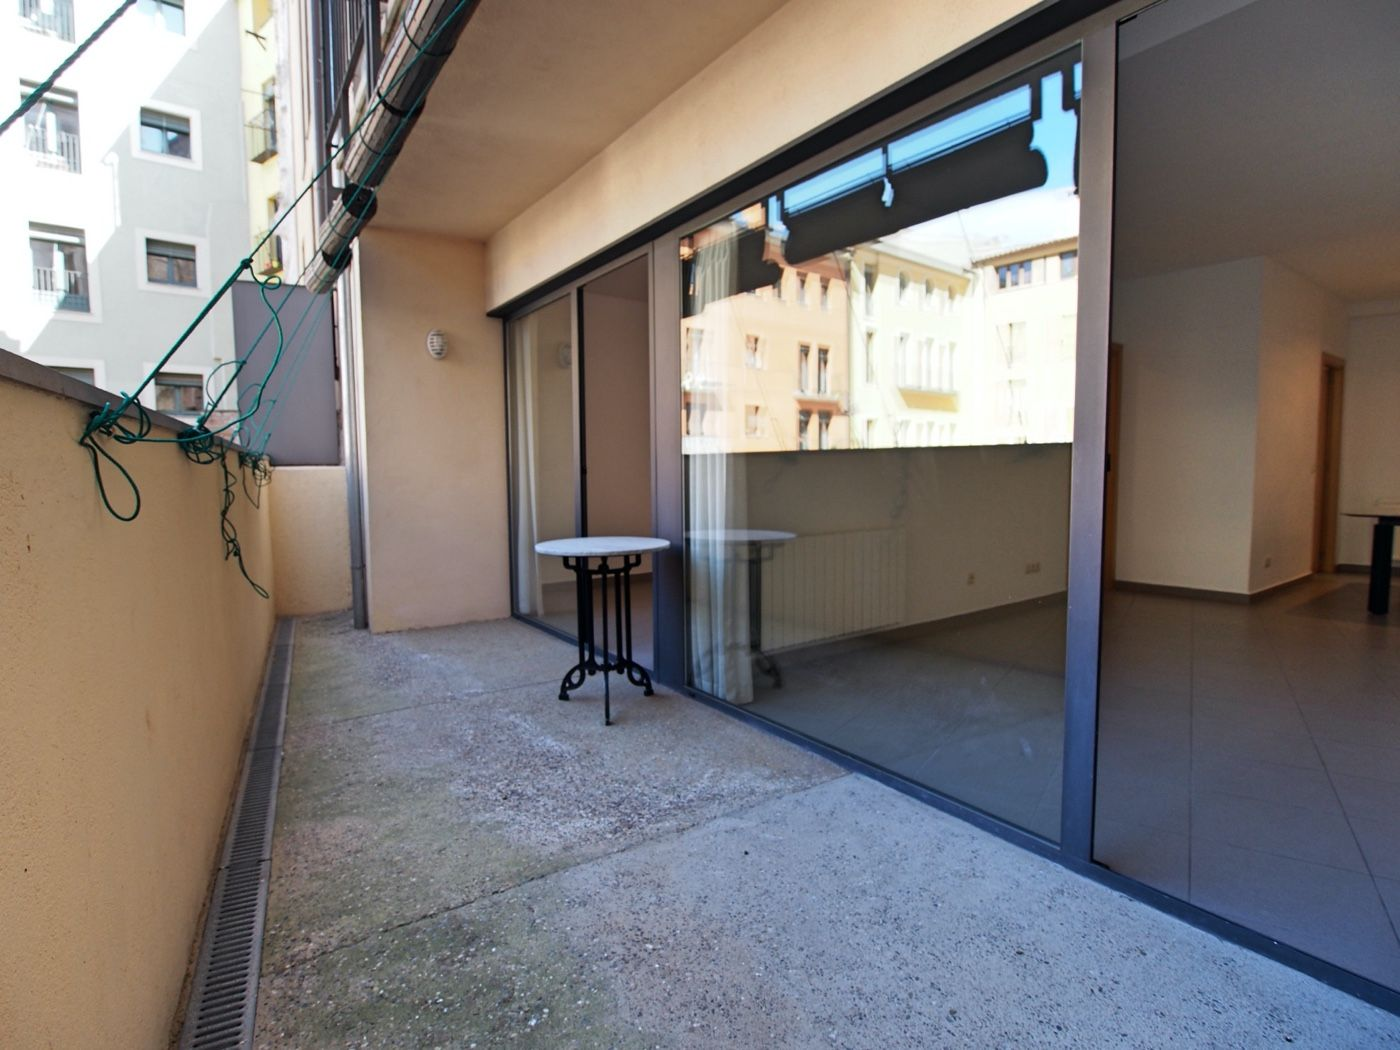 Miete Appartement in Centre-Barri Vell. Piso con terrazza y patio grande